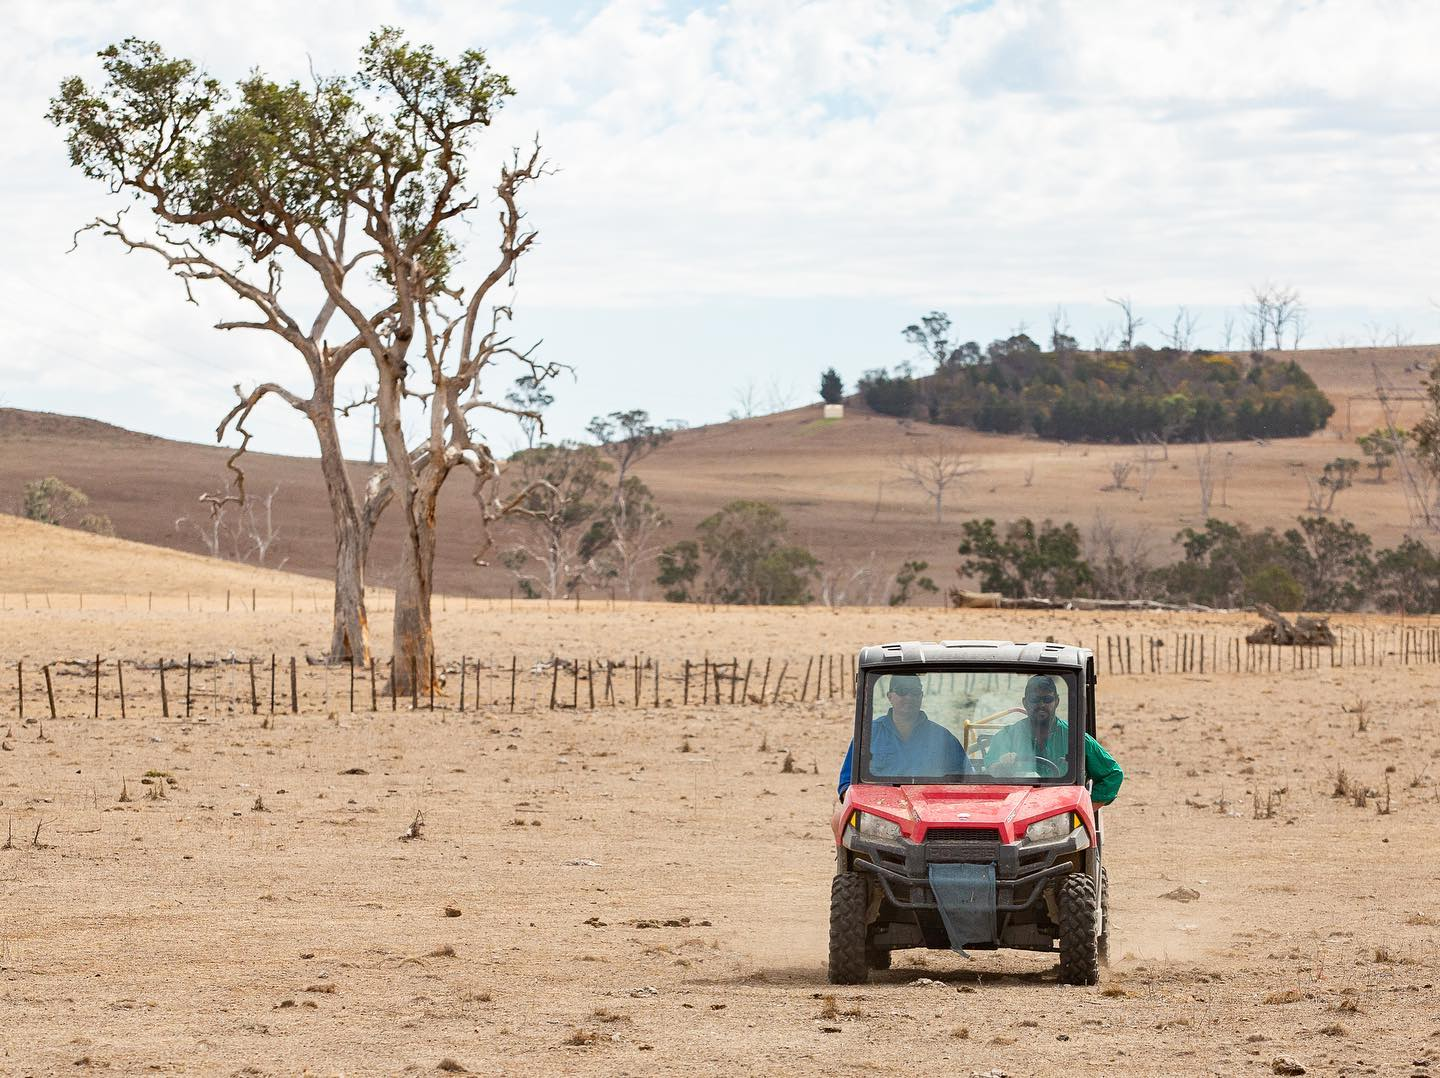 Farmers driving a 4 wheeler on a drought riddled farm - SimonScottPhoto